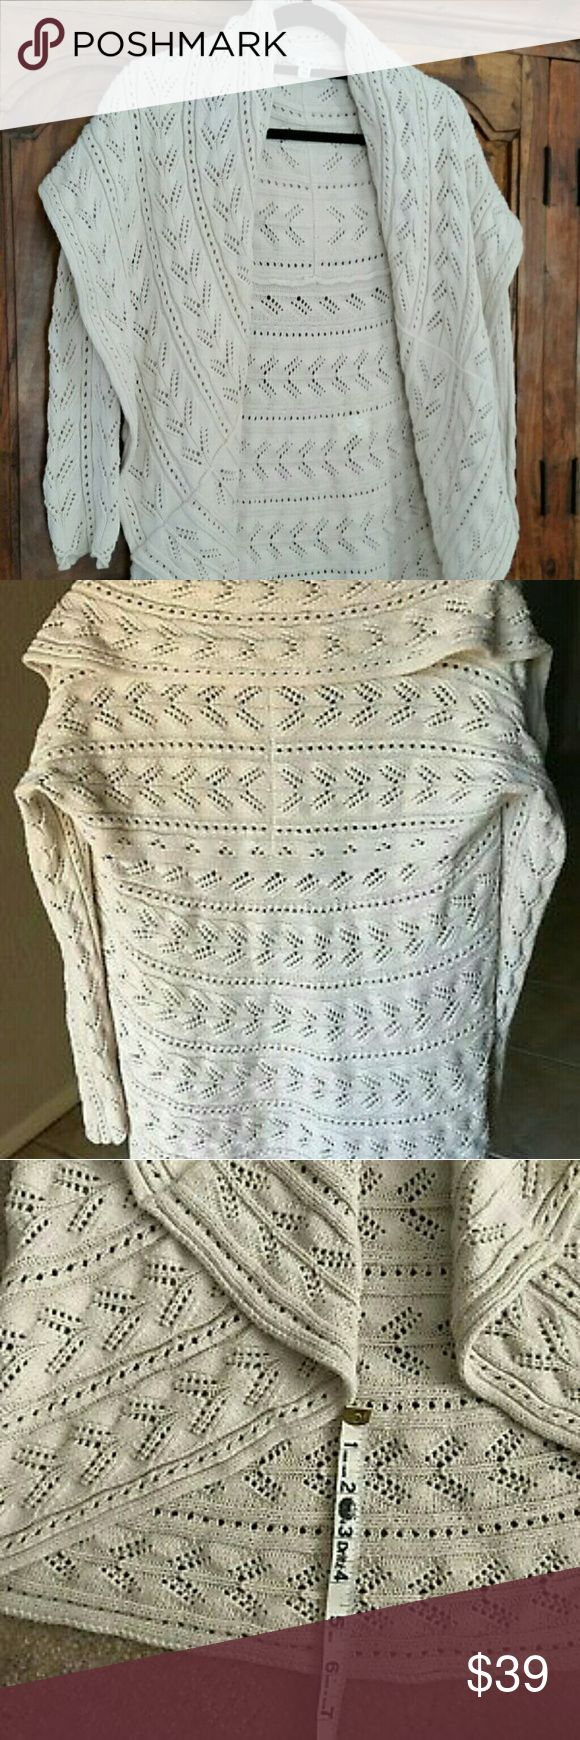 CABI Circle Knit Cardigan Sweater Boho chic style cardigan with large collar in a gorgeous knit natural cream color. Pictures do not do this cardigan justice. Worn once,  looking for a sml-med. Hand washed and ready to wear. Like new condition. Quick shipping. Make offer. CAbi Sweaters Cardigans